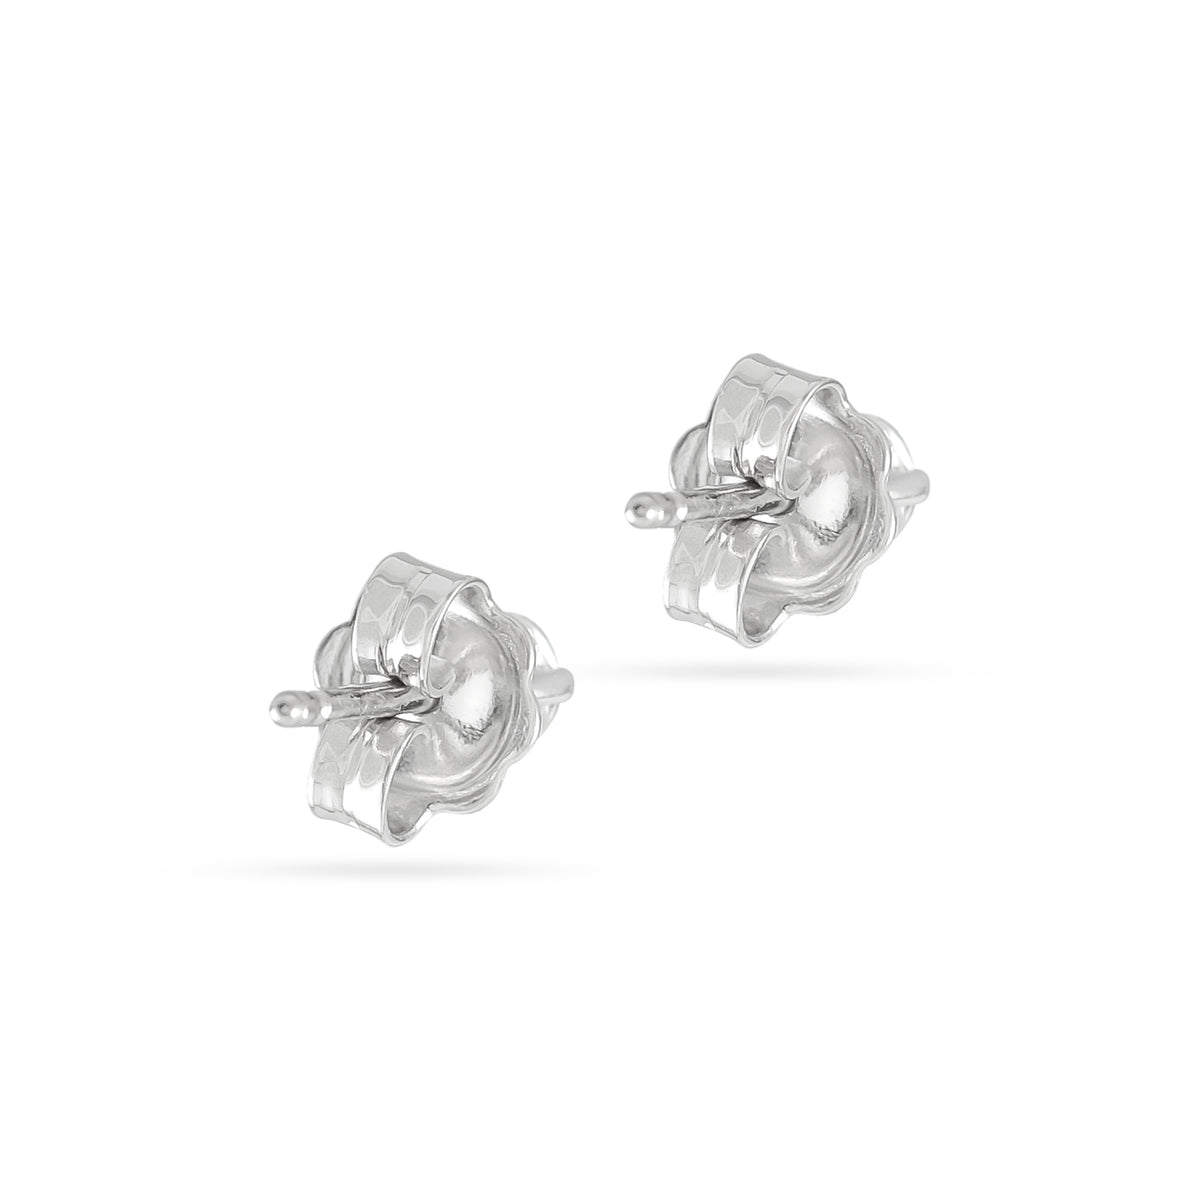 1.04ct 18ct White Gold Diamond Stud Earrings